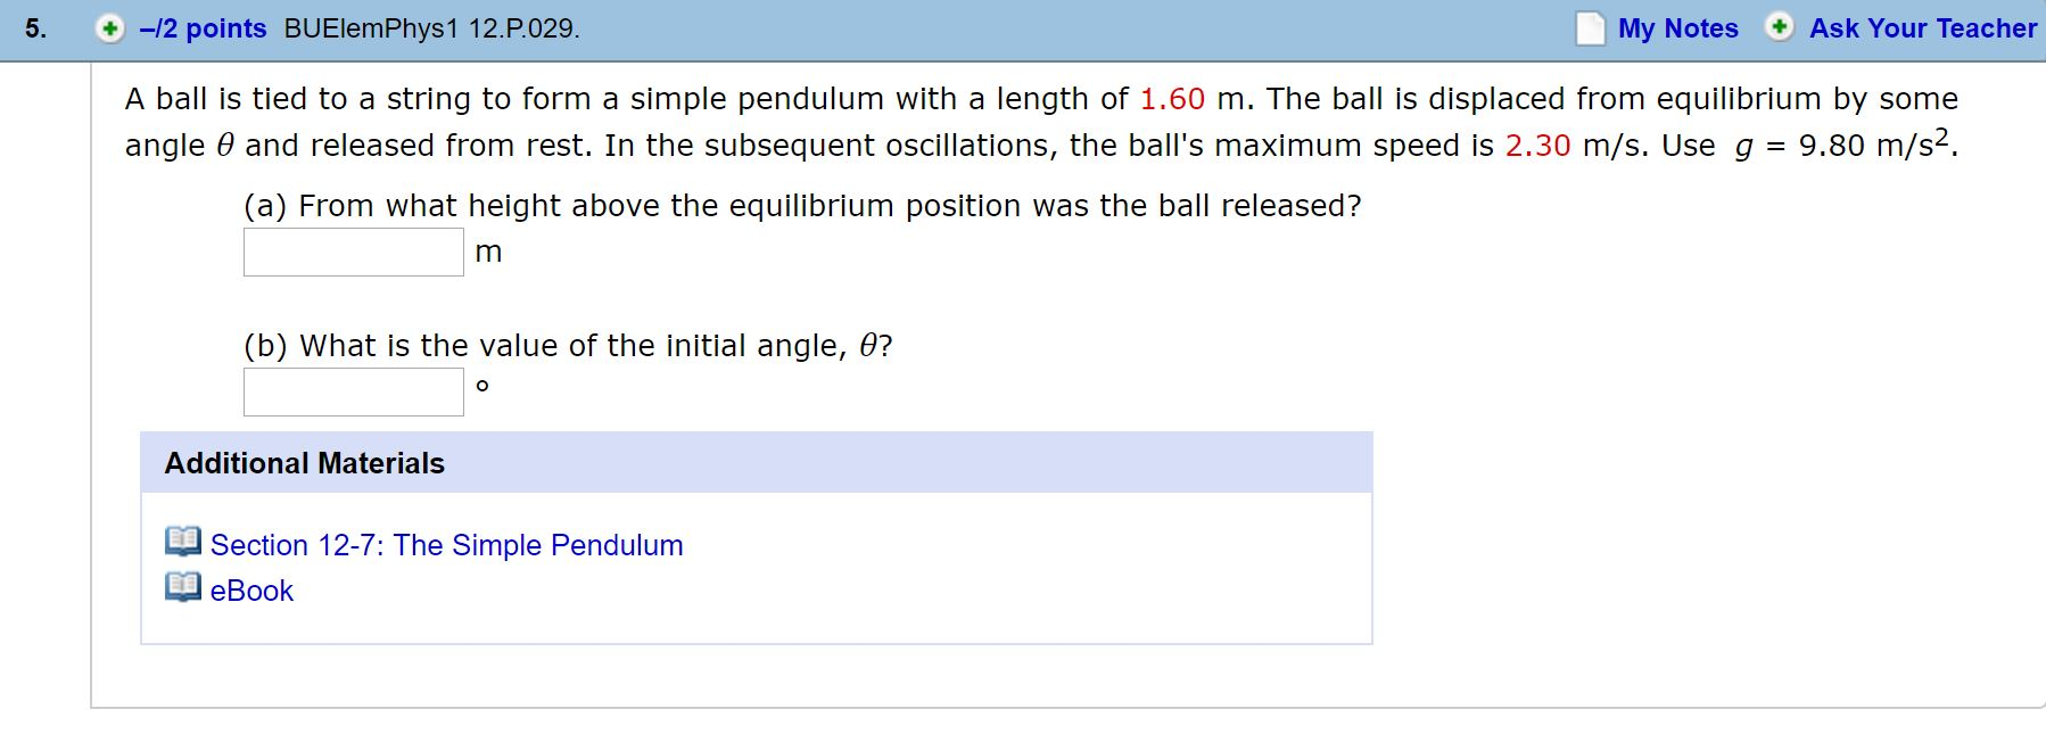 Physics archive november 04 2016 chegg a ball is tied to a string to form a simple pendul fandeluxe Image collections